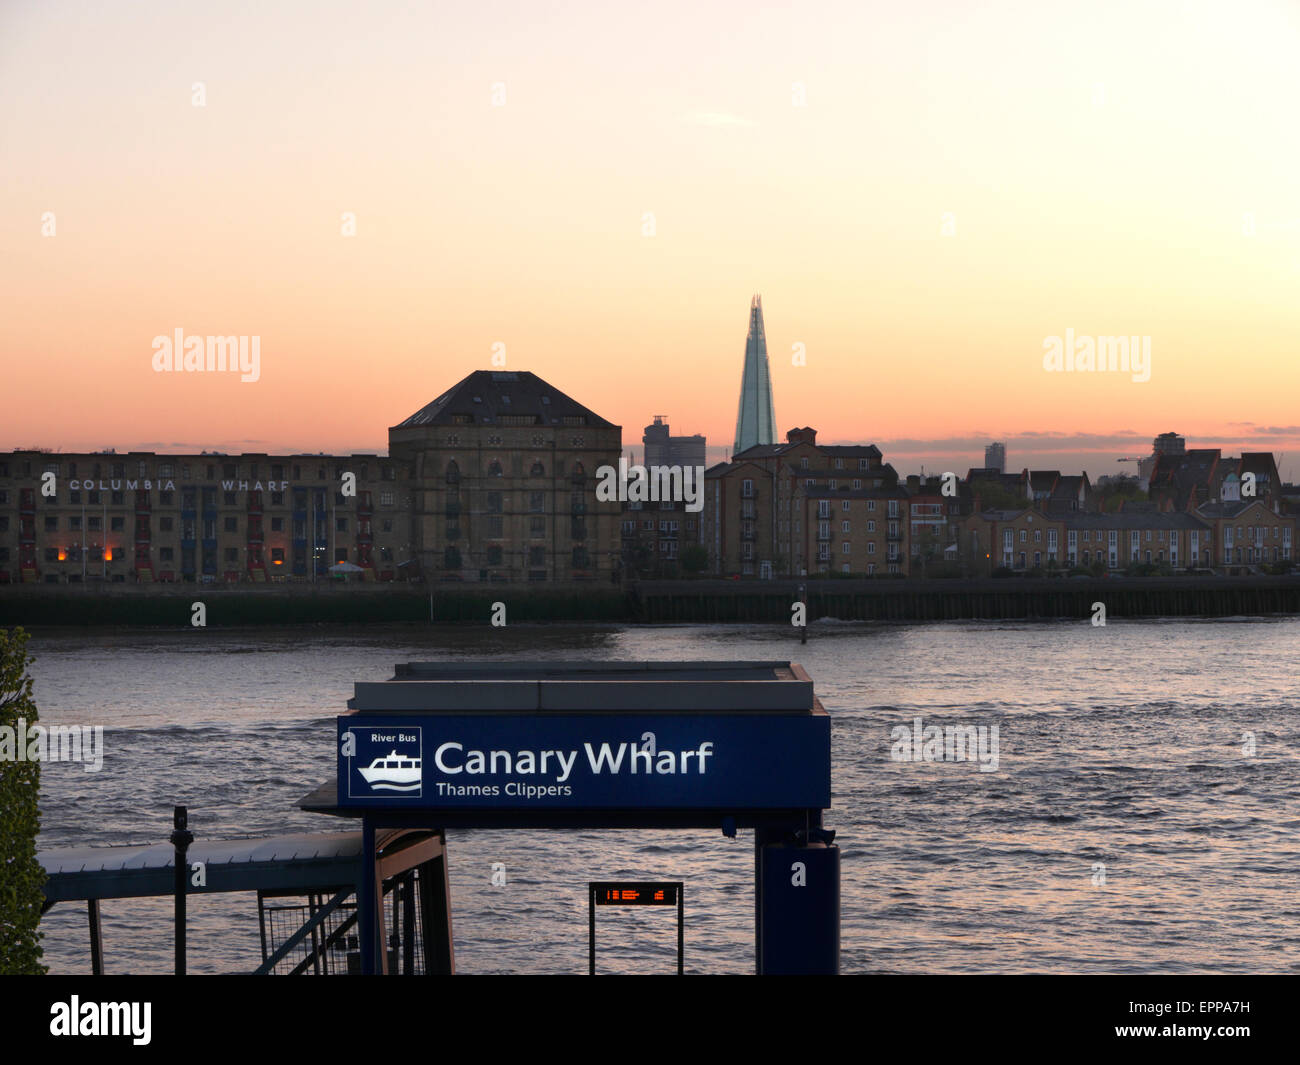 Pier embarkation point for Thames Clipper River boats, Columbia Wharf and Shard buildings behind, Canary Wharf London - Stock Image